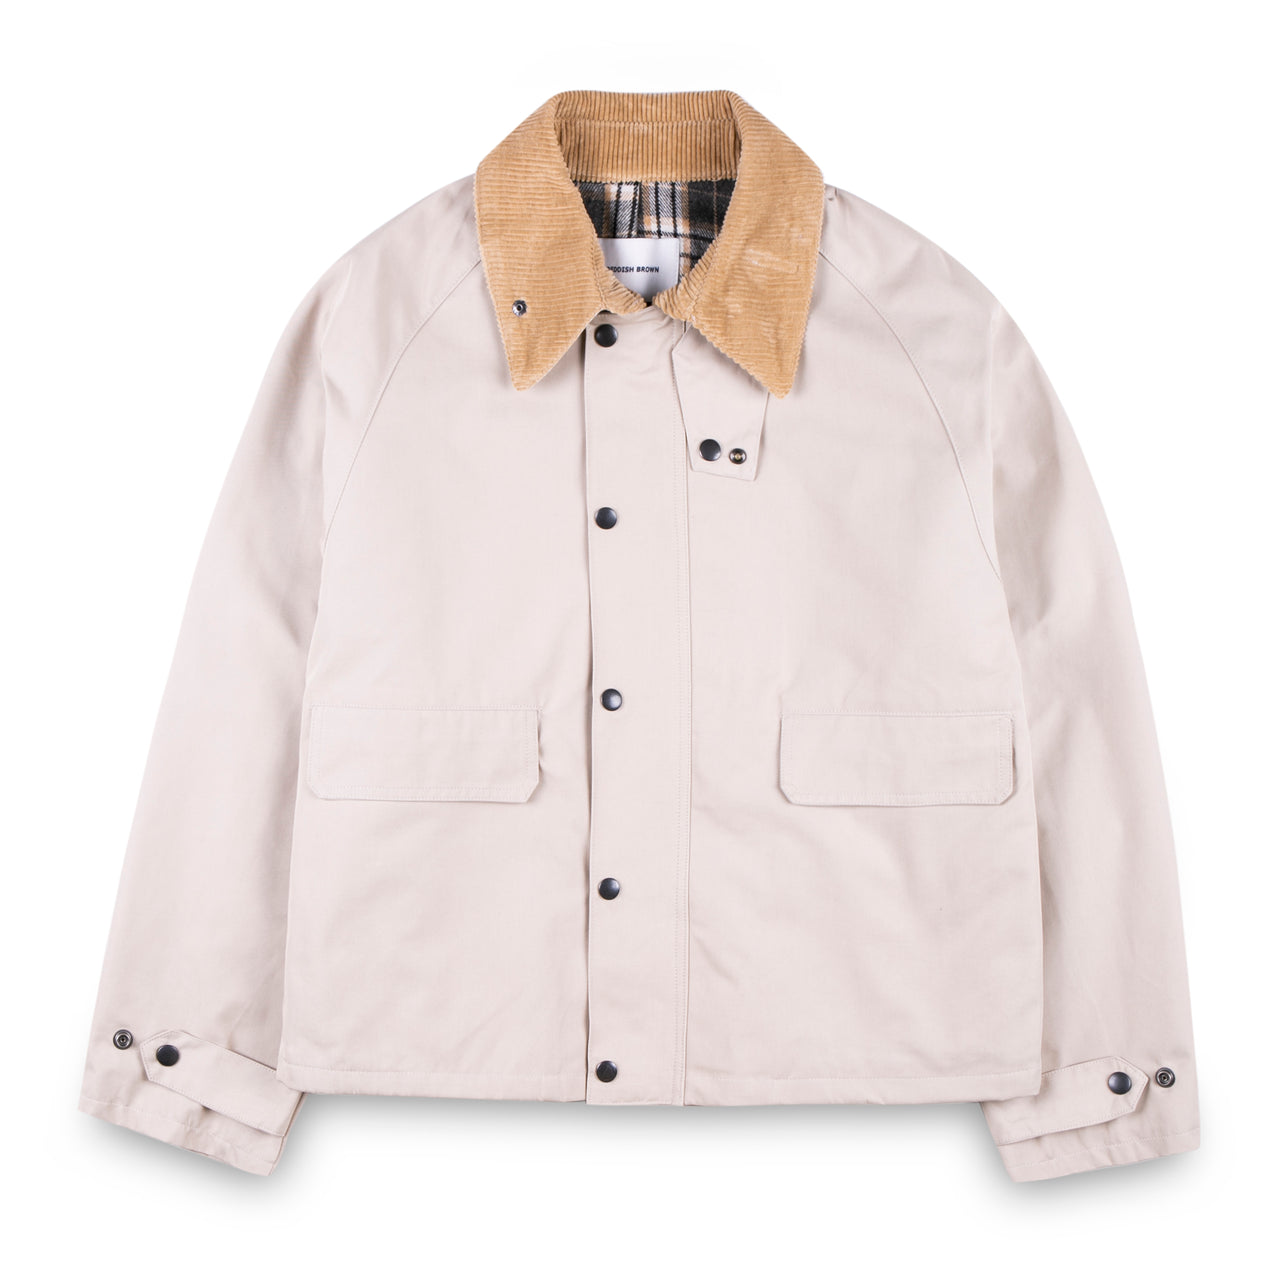 Reddish Brown Cord Collar Jacket